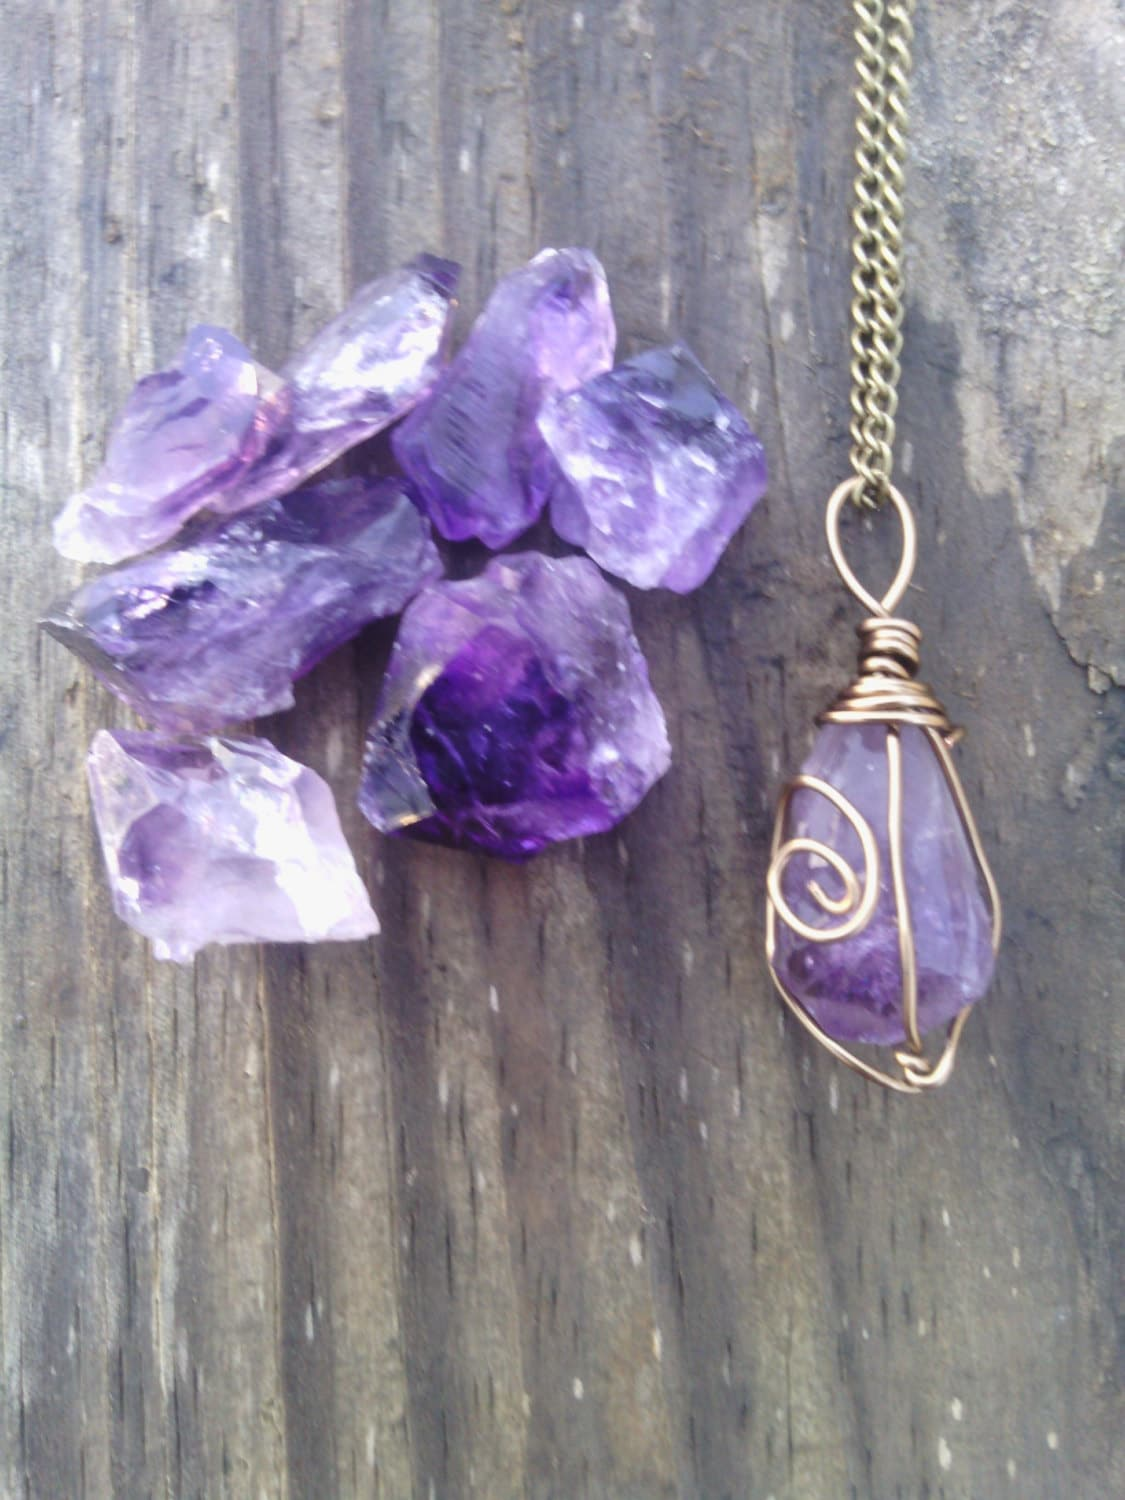 Raw Amethyst necklace amethyst necklace healing stone rough